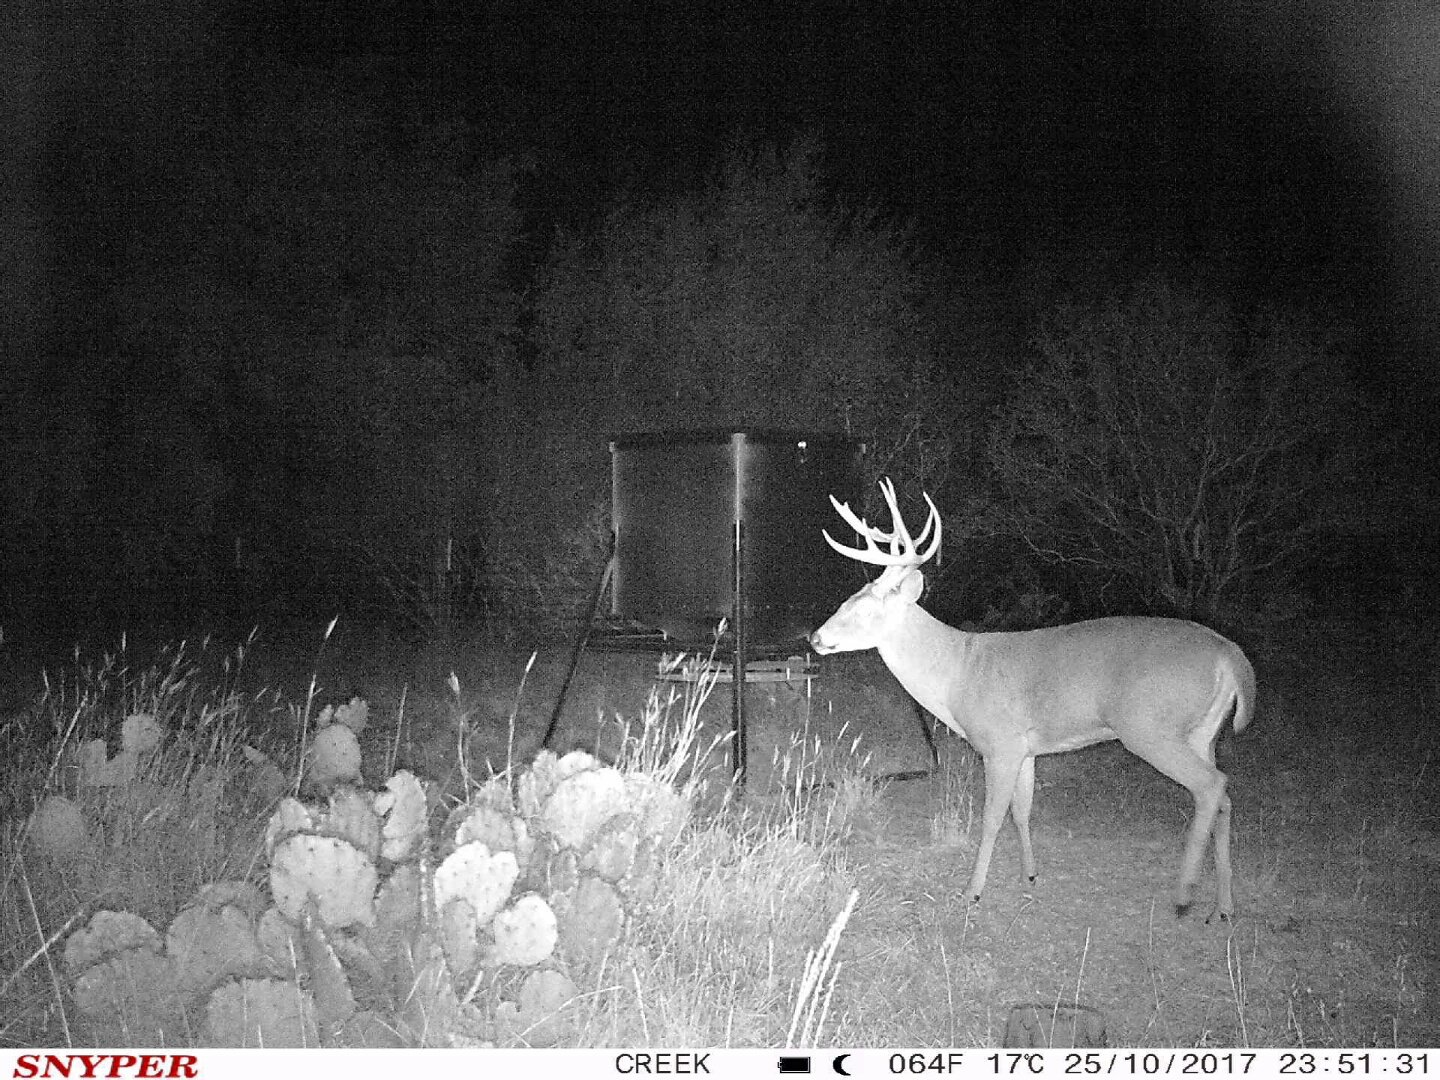 The General 3G Game Camera by Snyper Hunting Products (12MP, Viewing LCD, Connected by AT&T) by Snyper Hunting Products (Image #9)